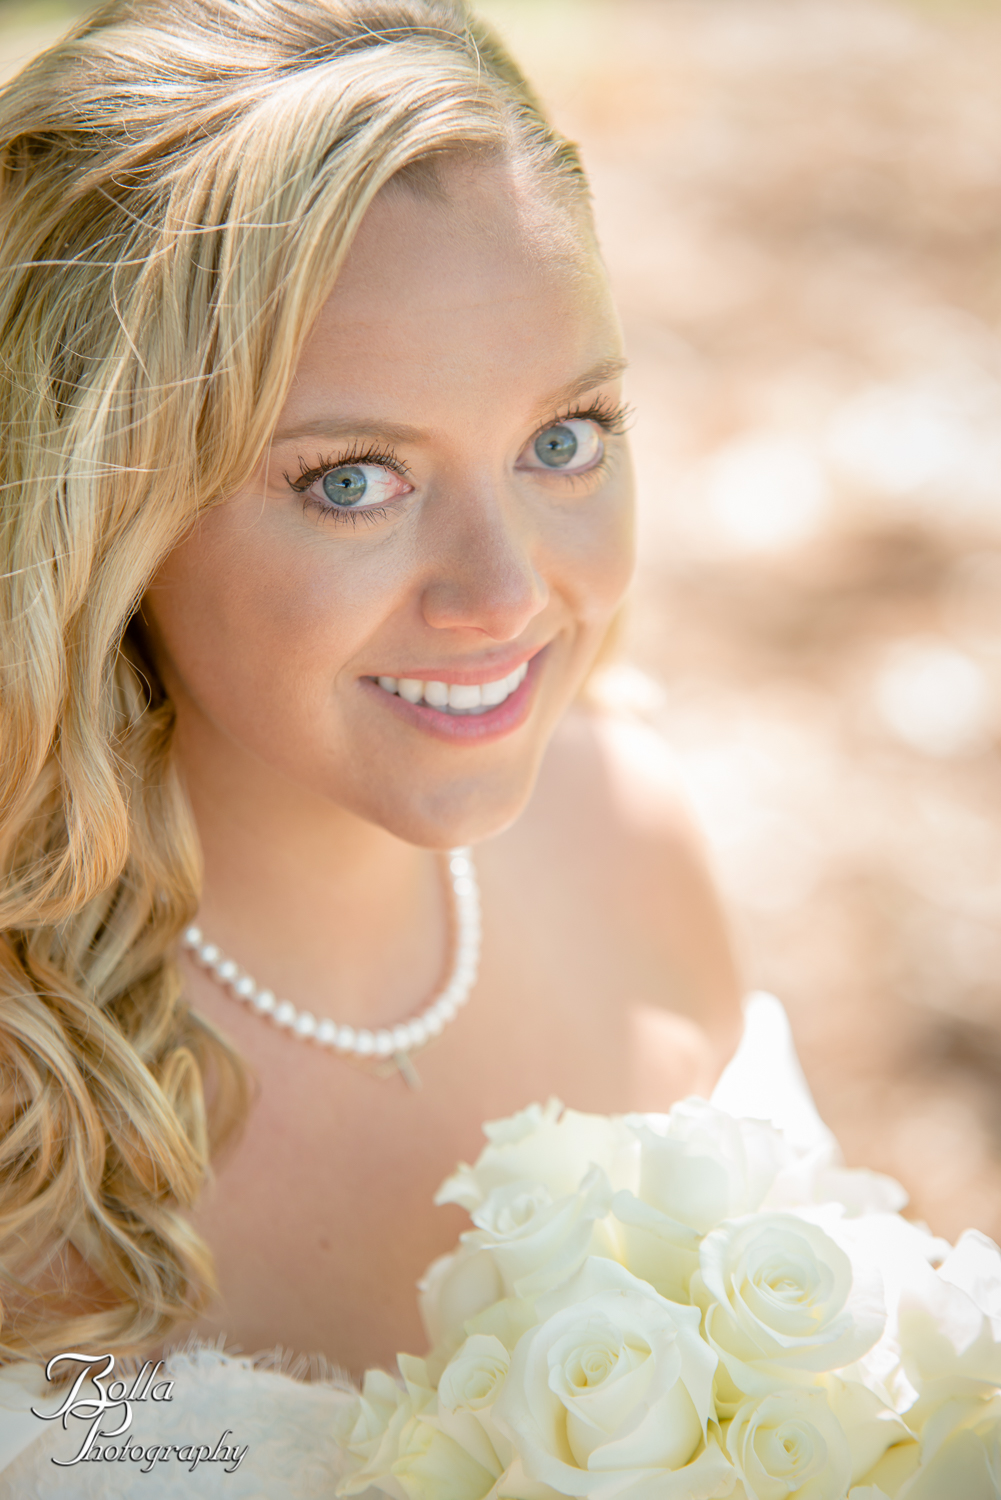 Bolla_Photography_St_Louis_wedding_photographer-0132.jpg